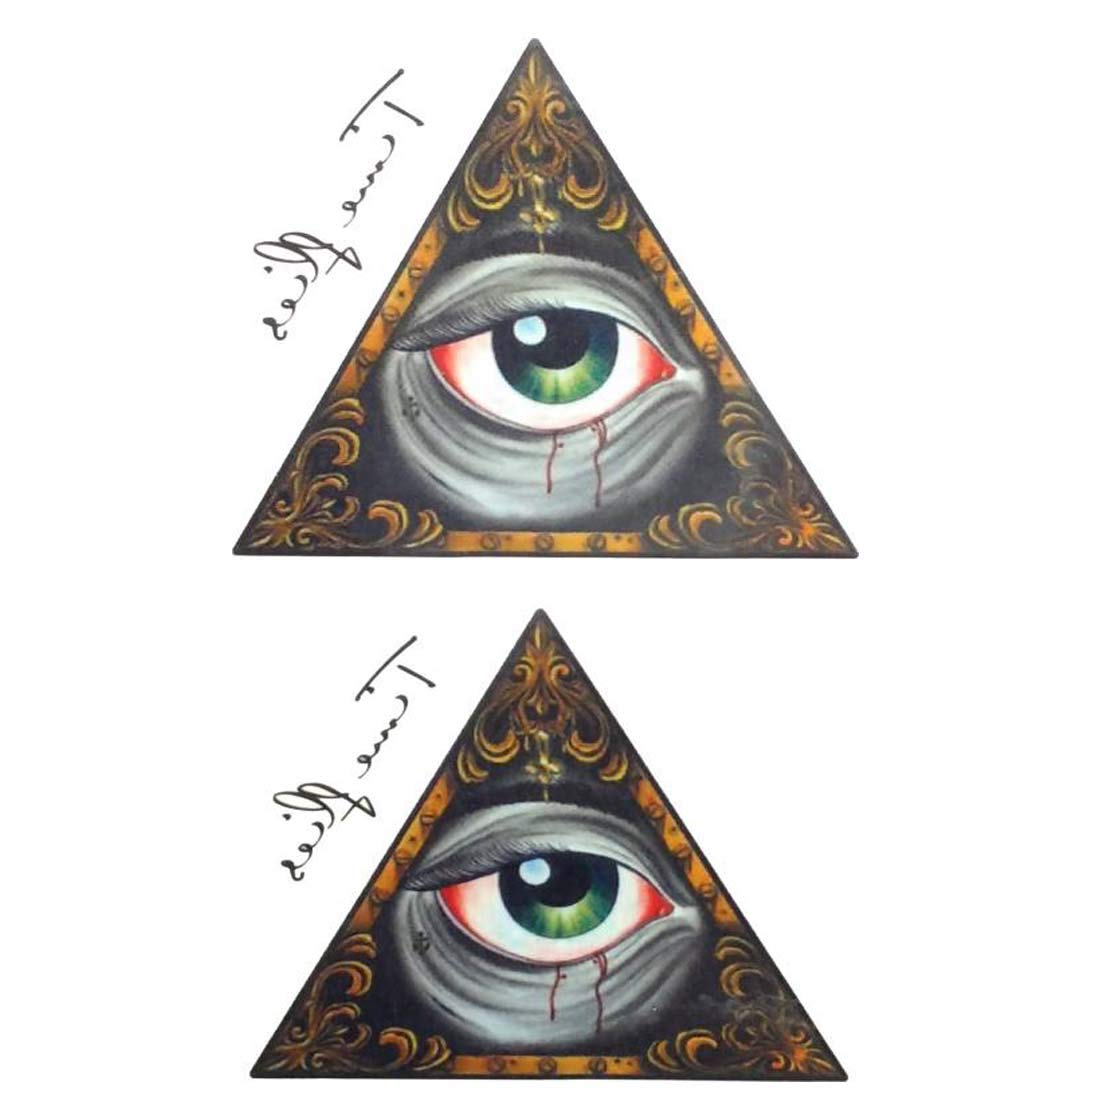 3d Third Eye Arm Hand Wrist Removable Temporary Tattoo Amazon In Beauty